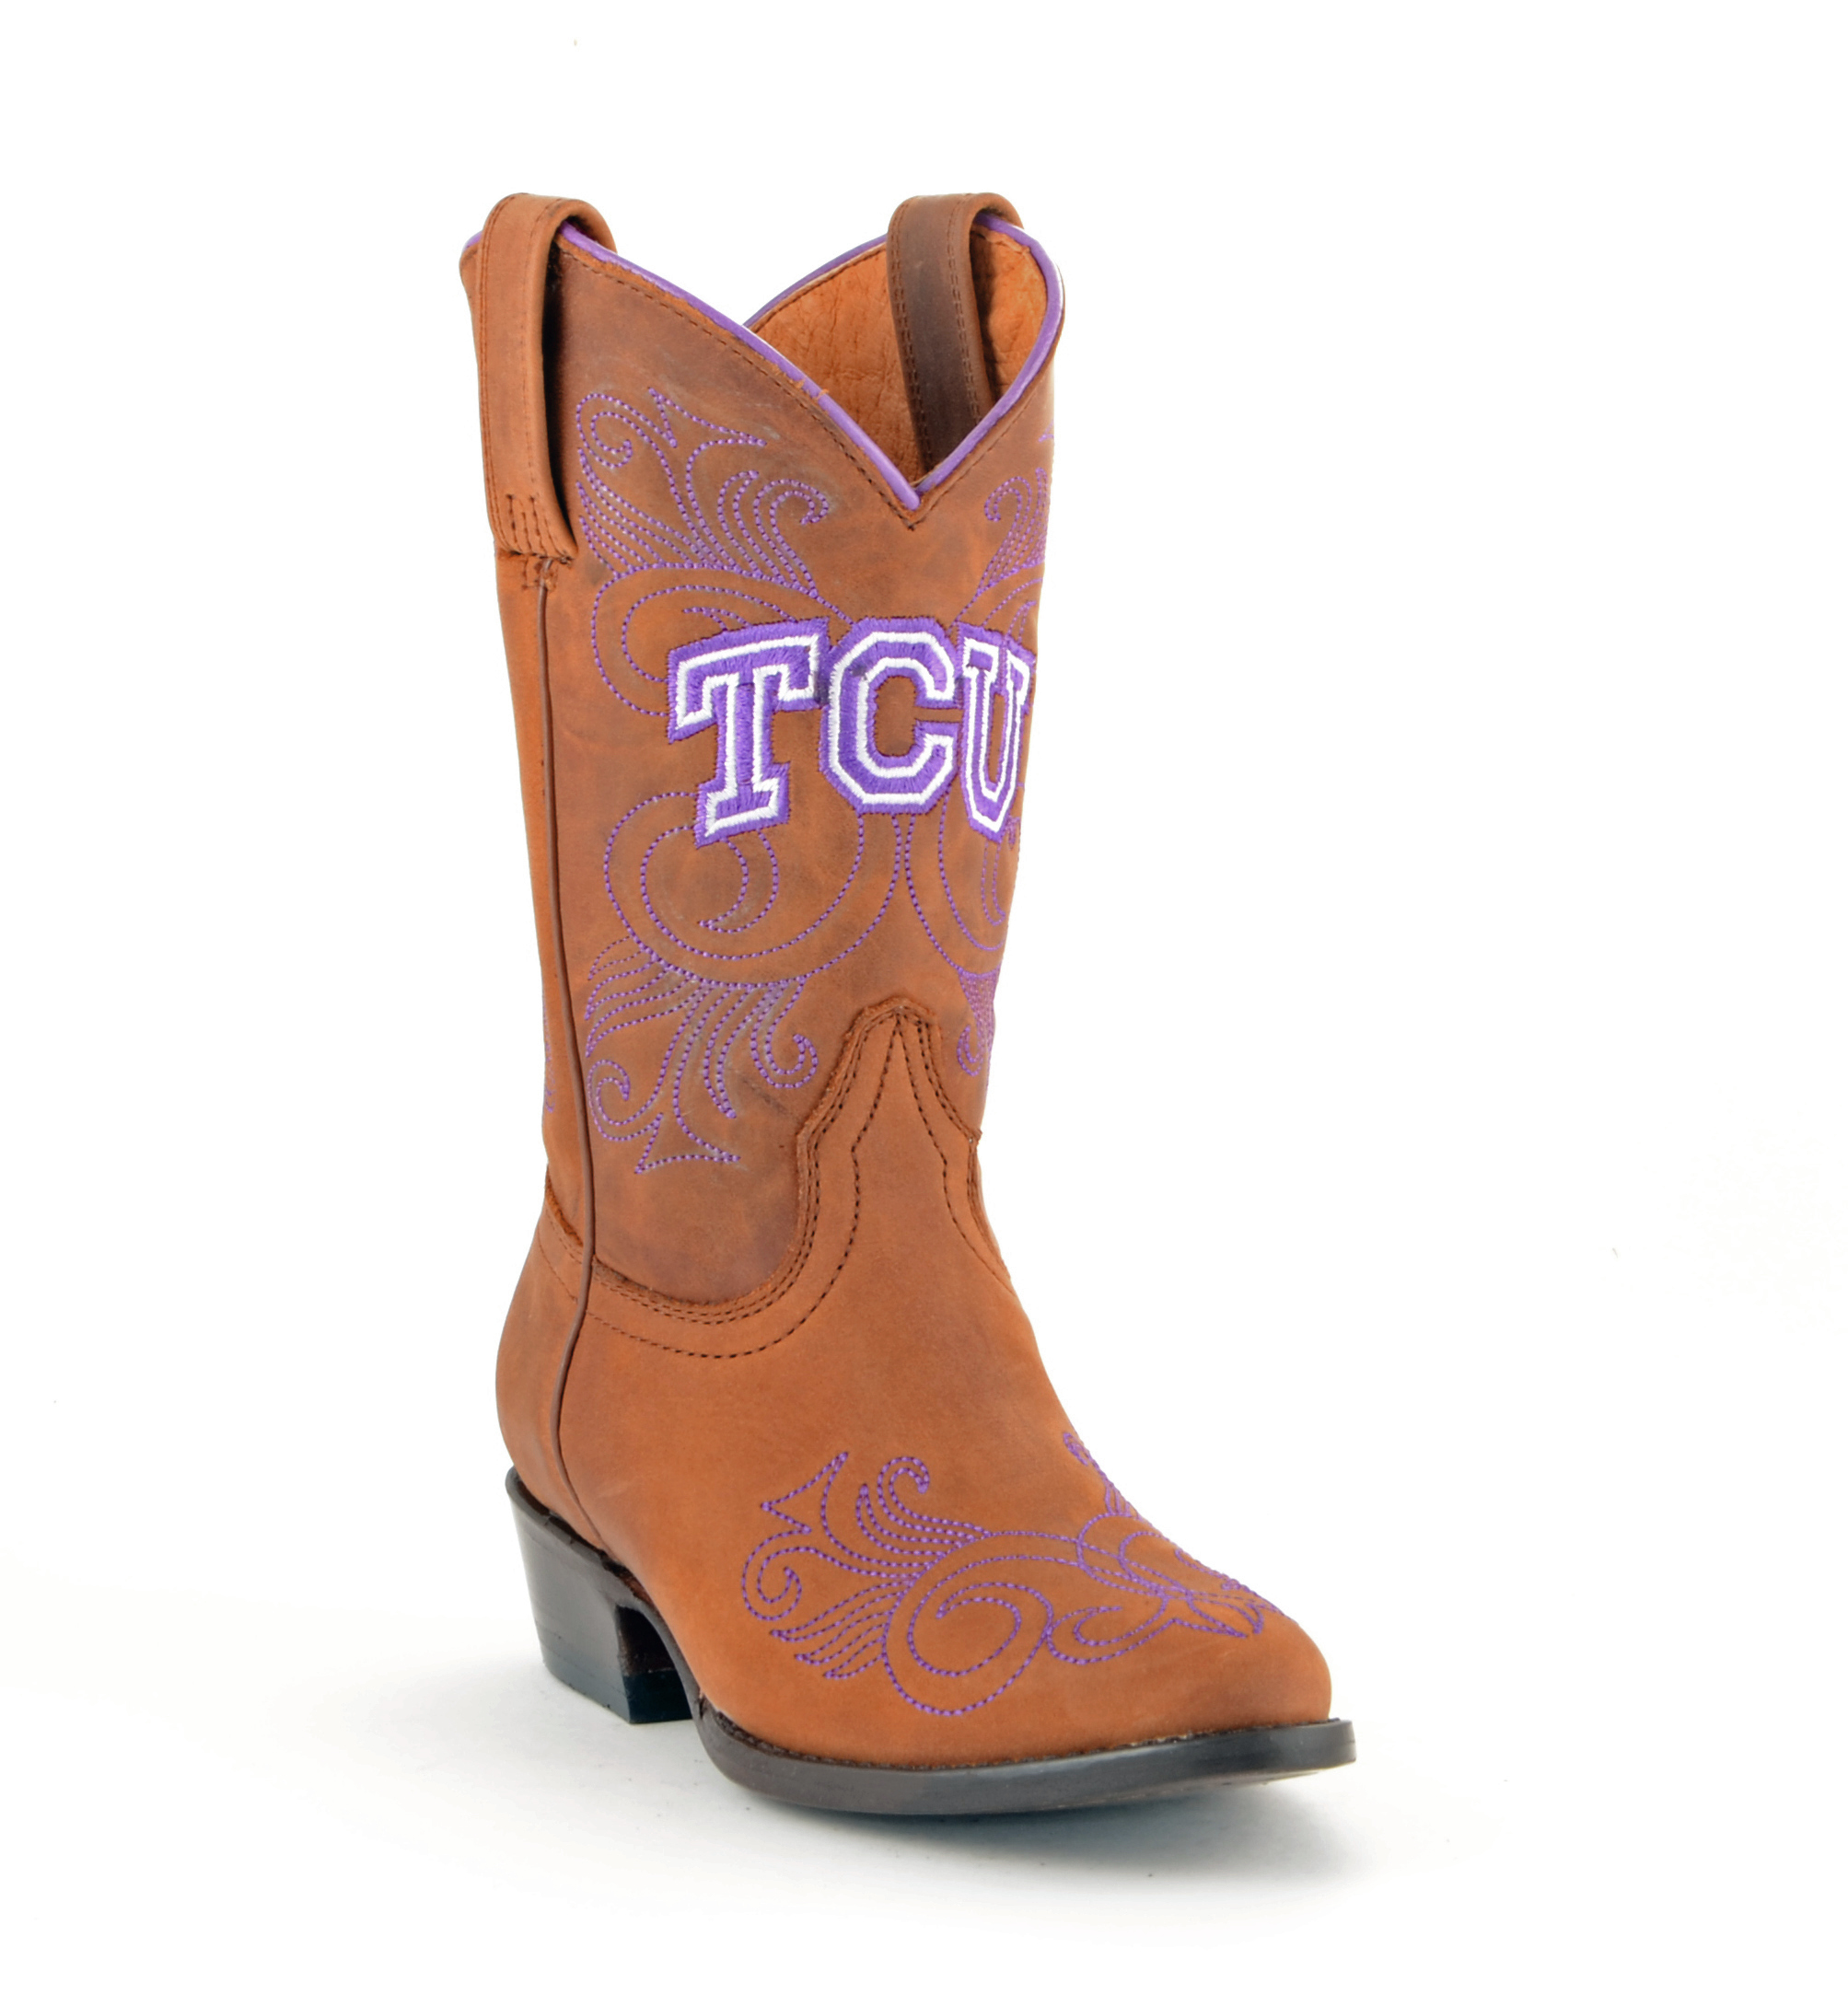 Gameday New Girls Leather Texas Christian Western Cowboy Boots by GameDay Boots